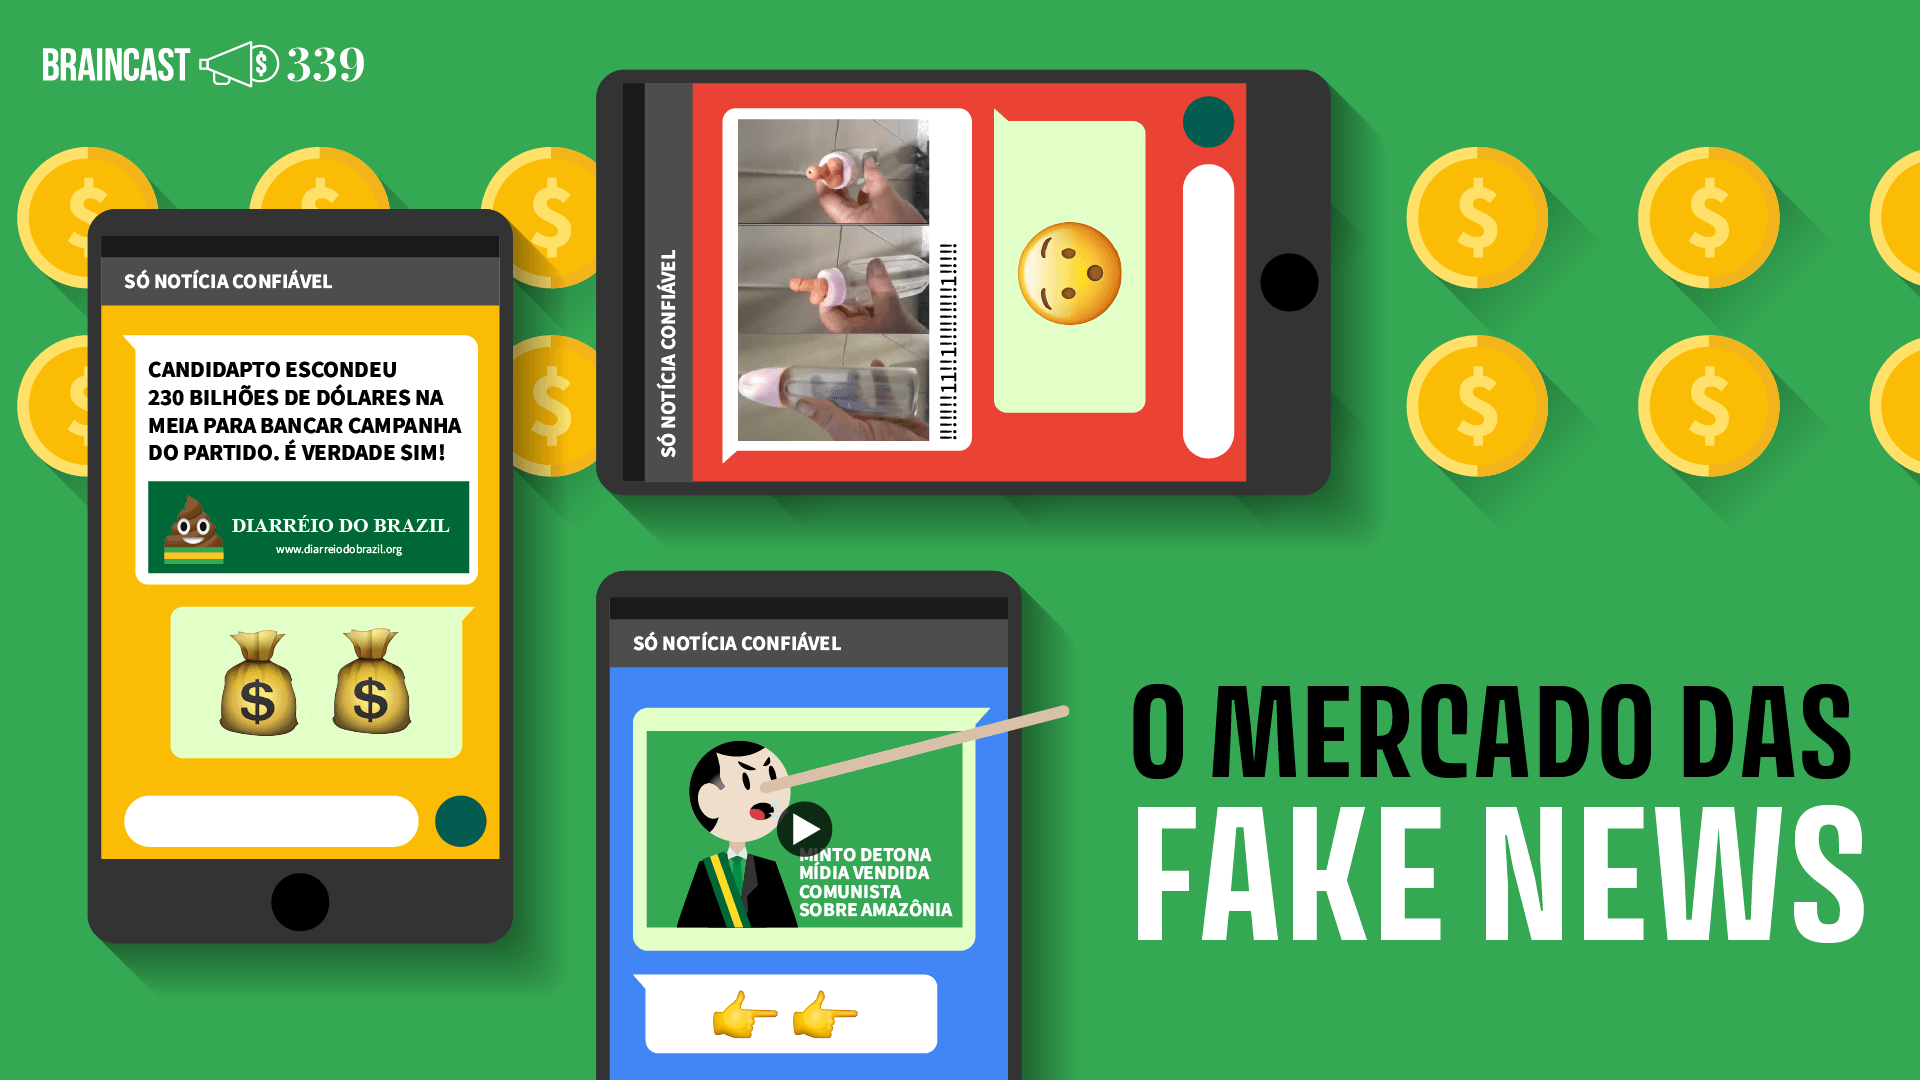 Braincast 339 – O mercado das fake news